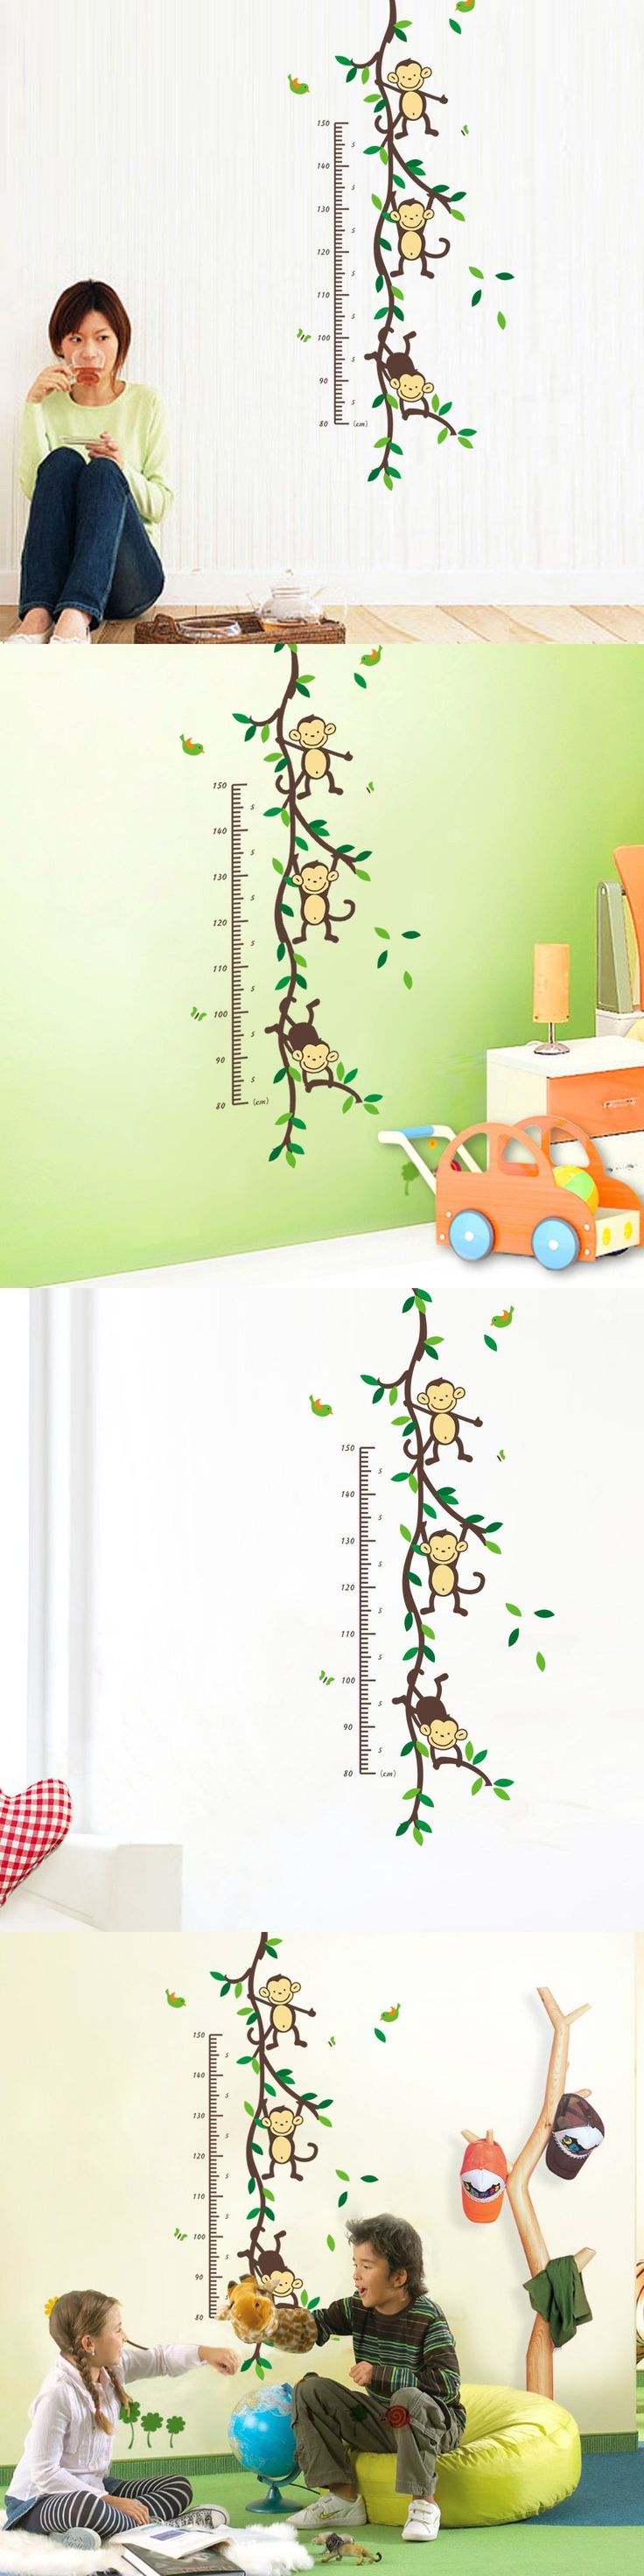 best 25 kids growth charts ideas on pinterest girls height kids growth chart wall sticker home decor cartoon cute animal monkey living room decals wall art sticker wallpaperll